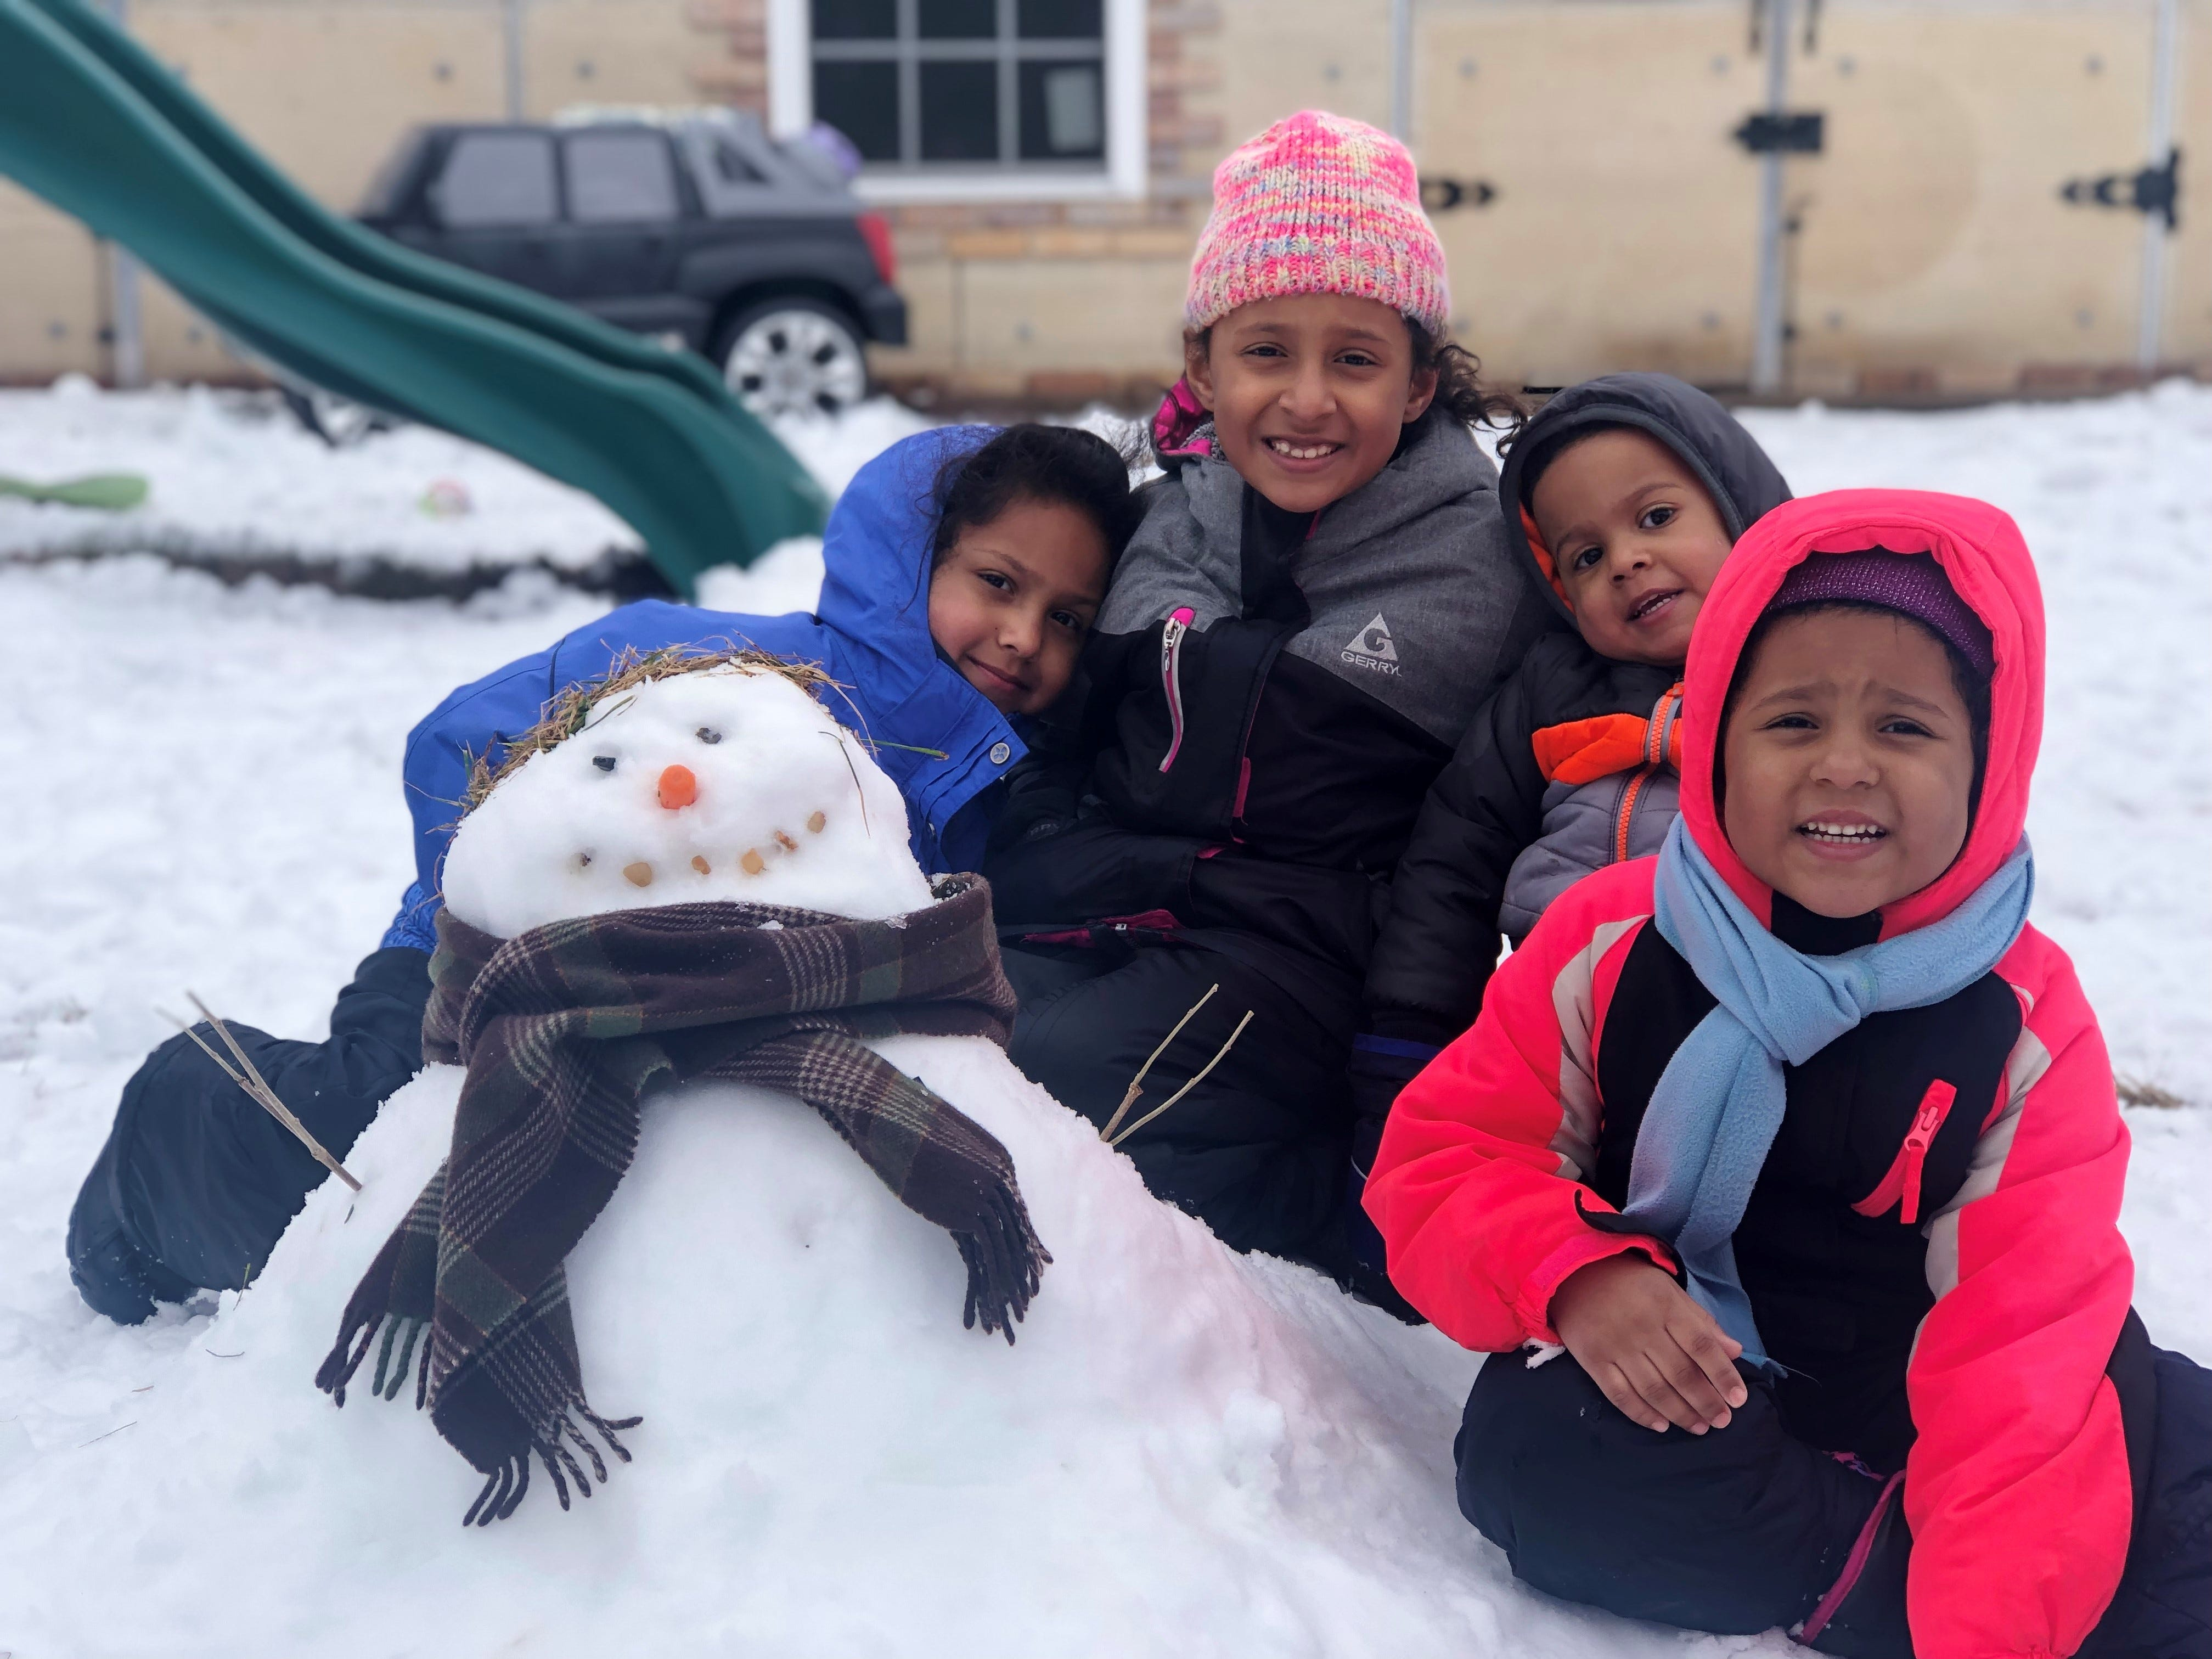 Nutley's Abutaah family - Ameera, 6, Sophia, 8, Lydia, 4, and Omar, 2 - pose with their snowman on Monday.